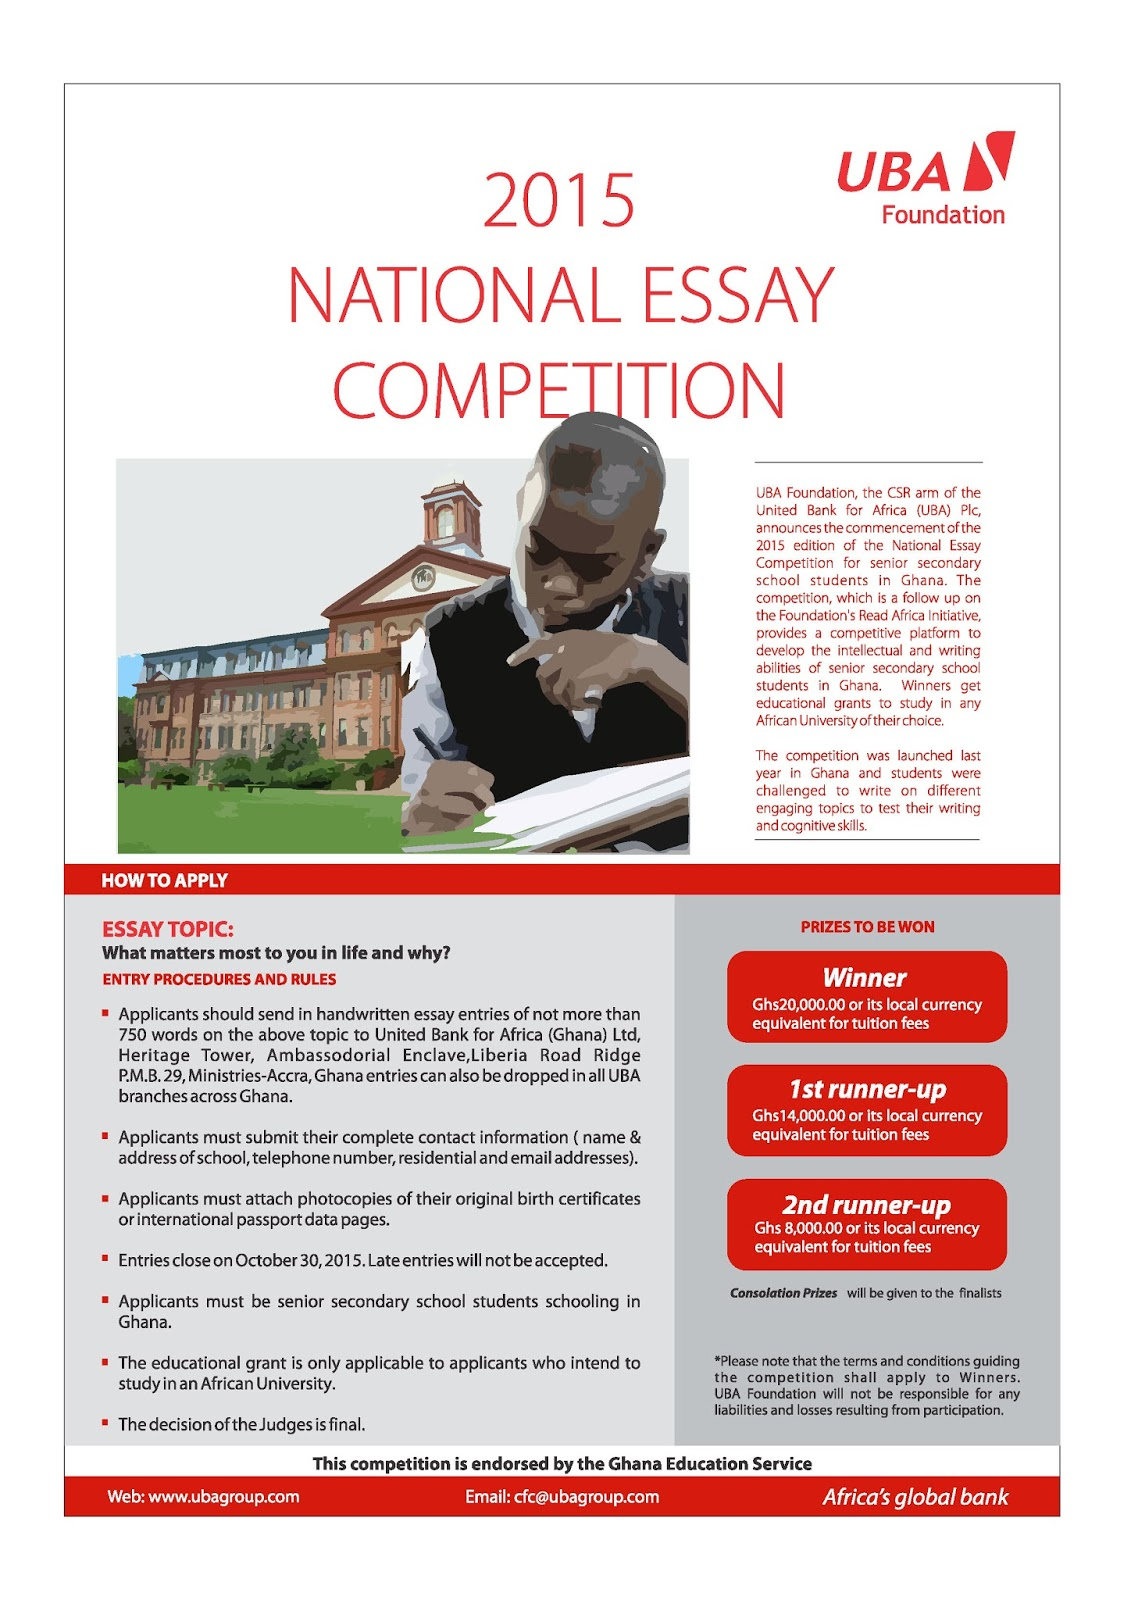 essay bank essay on night choice and chance night essay choice and  students submit entries for uba foundation essay competition the hand written essays can be sent to